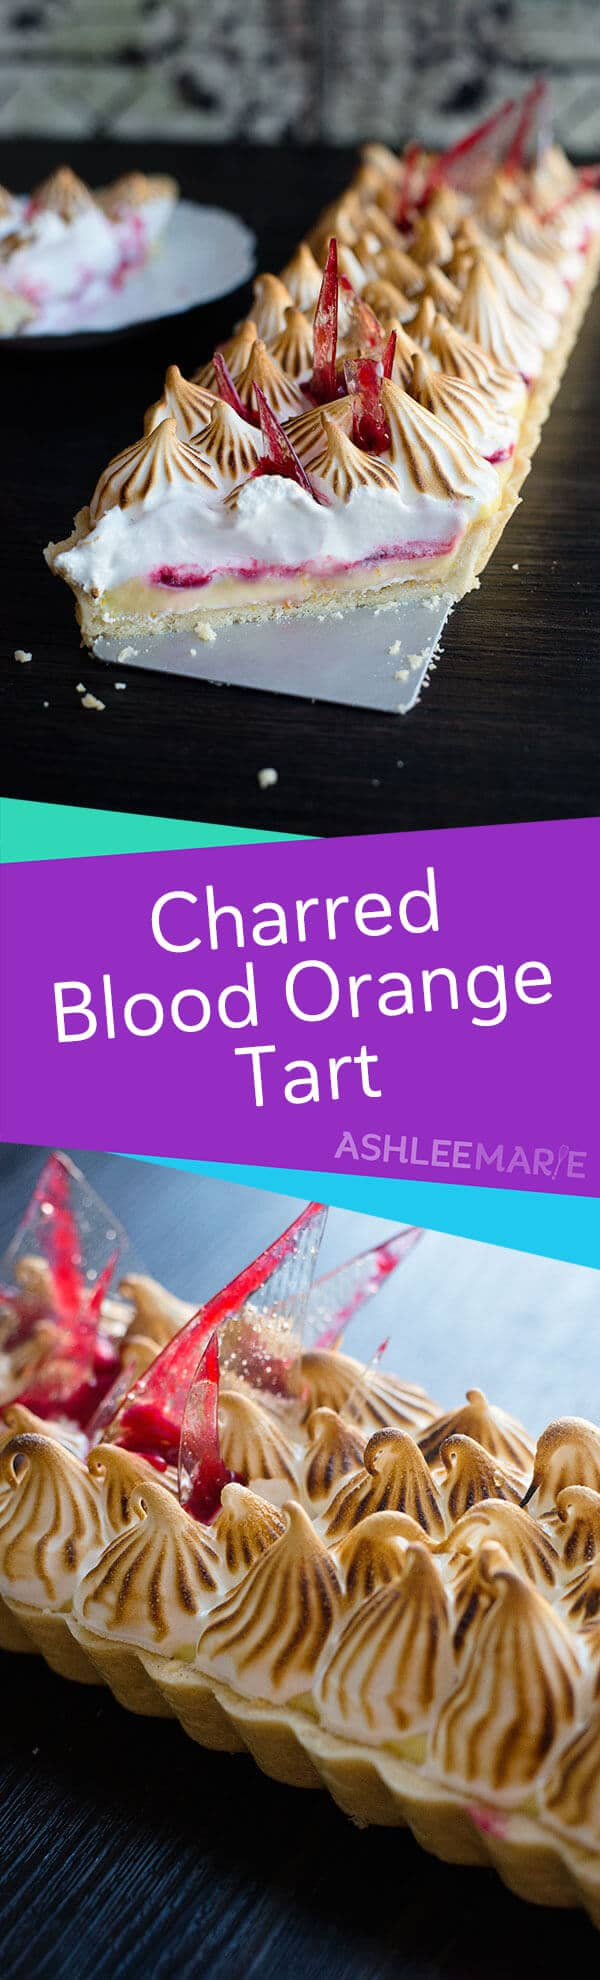 charred blood orange tart recipe